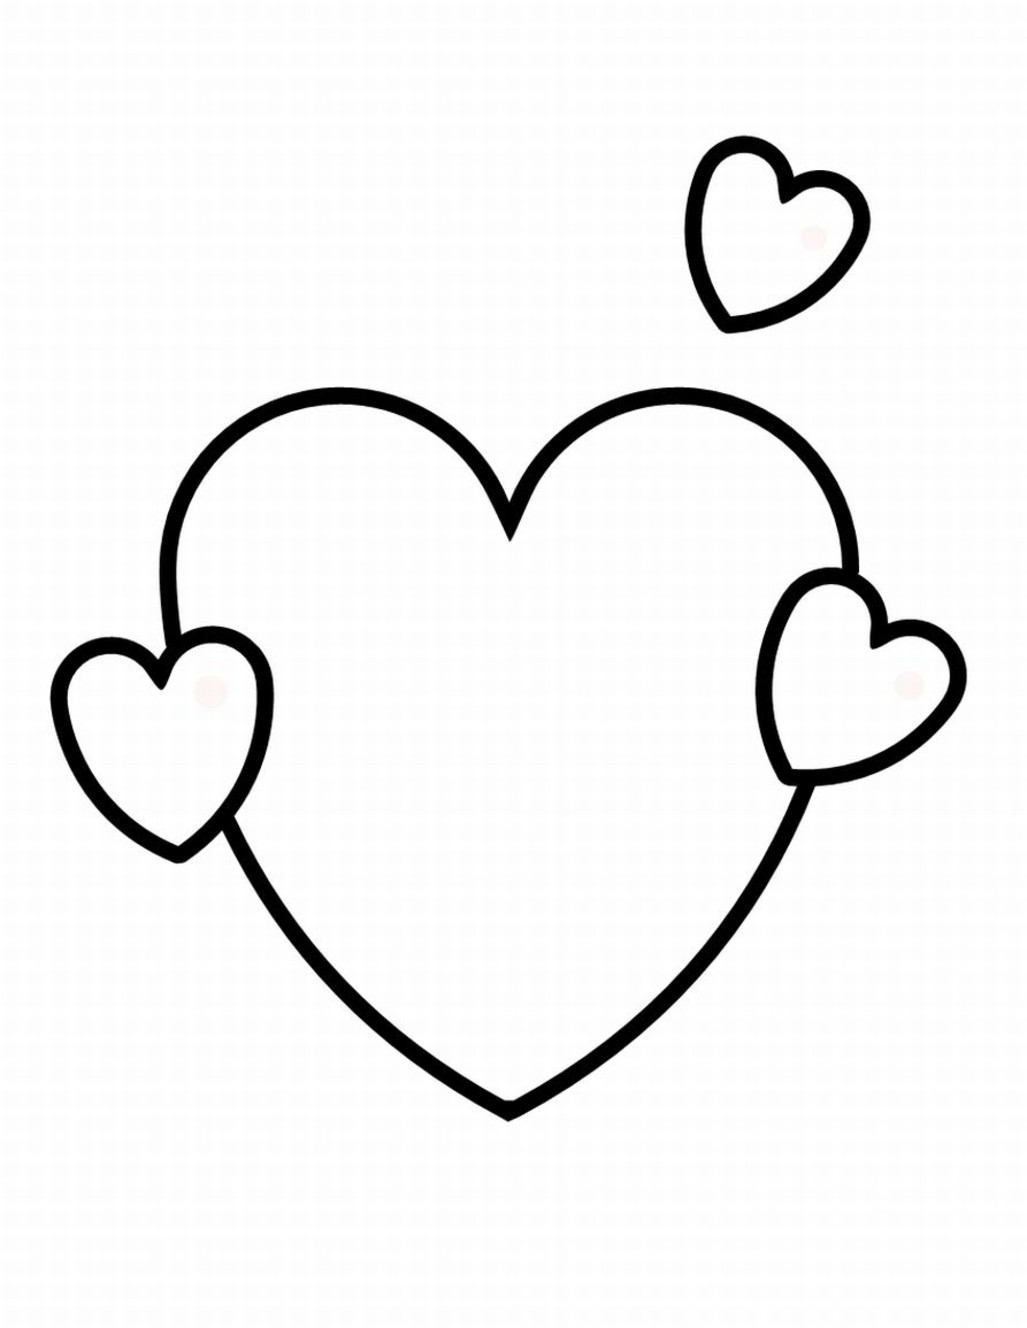 Now Valentine Hearts to Color Unique Heart Sheet Free Printable Collection Of Valentine Day Printable Coloring Pages Free Coloring Library Download